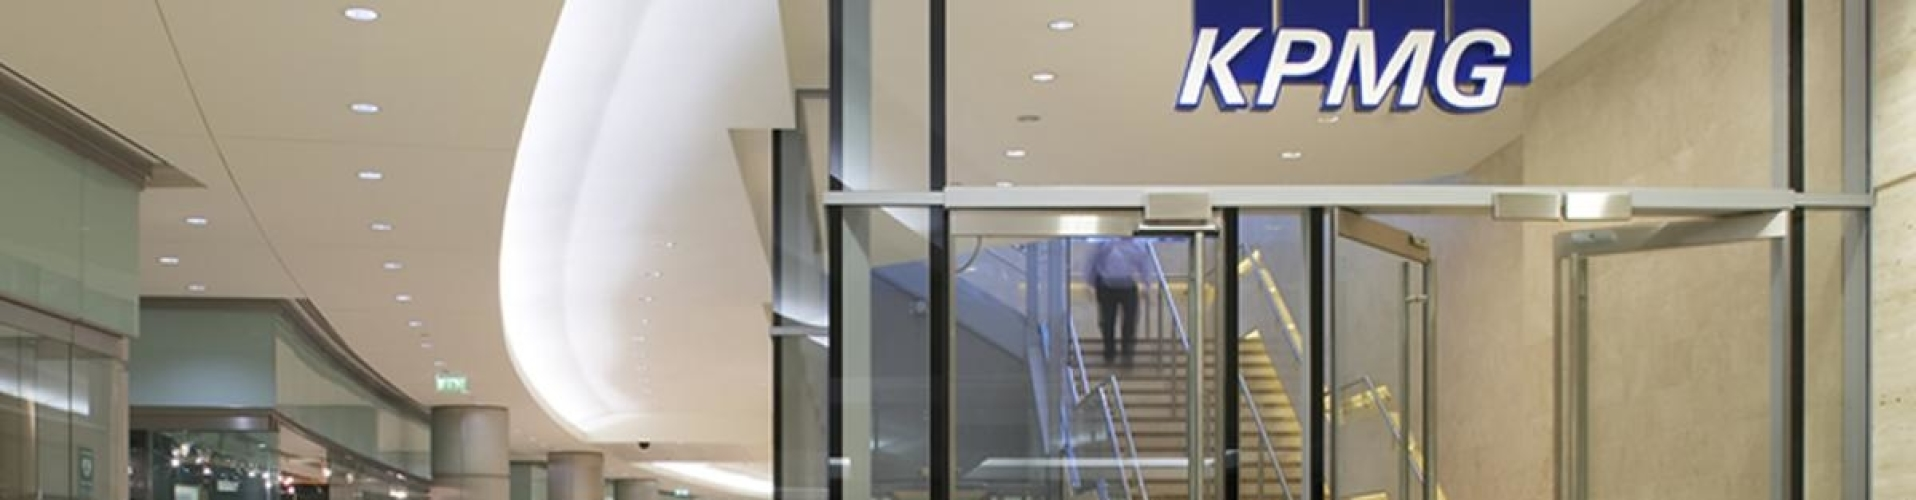 IT Security Manager vacature KPMG